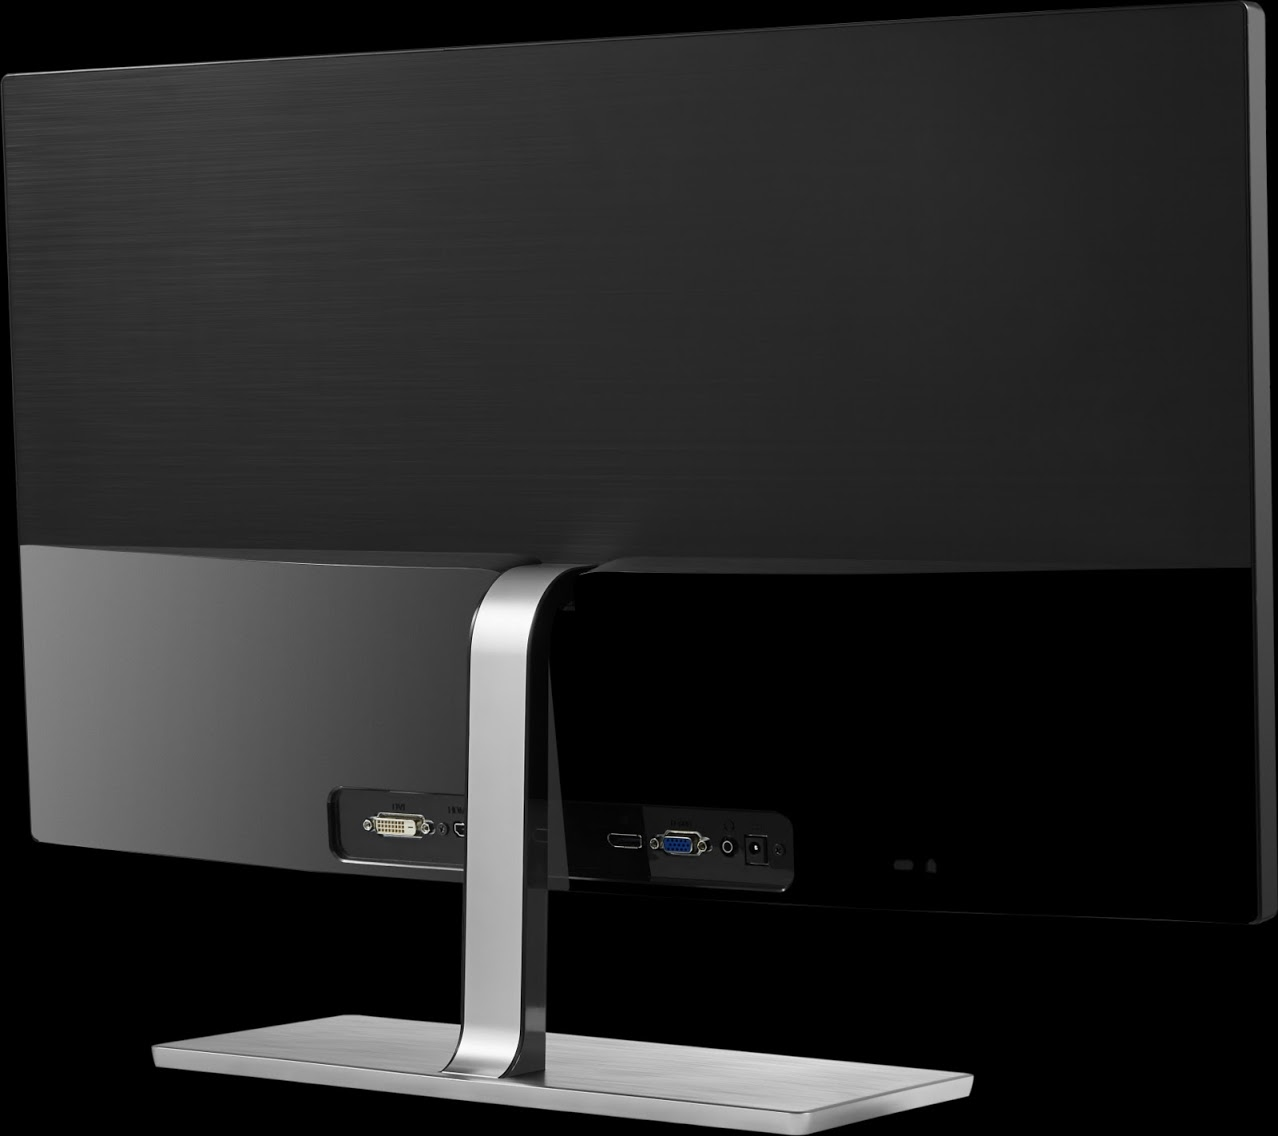 AOC unleashes an affordable 31.5-inch 1440p FreeSync display